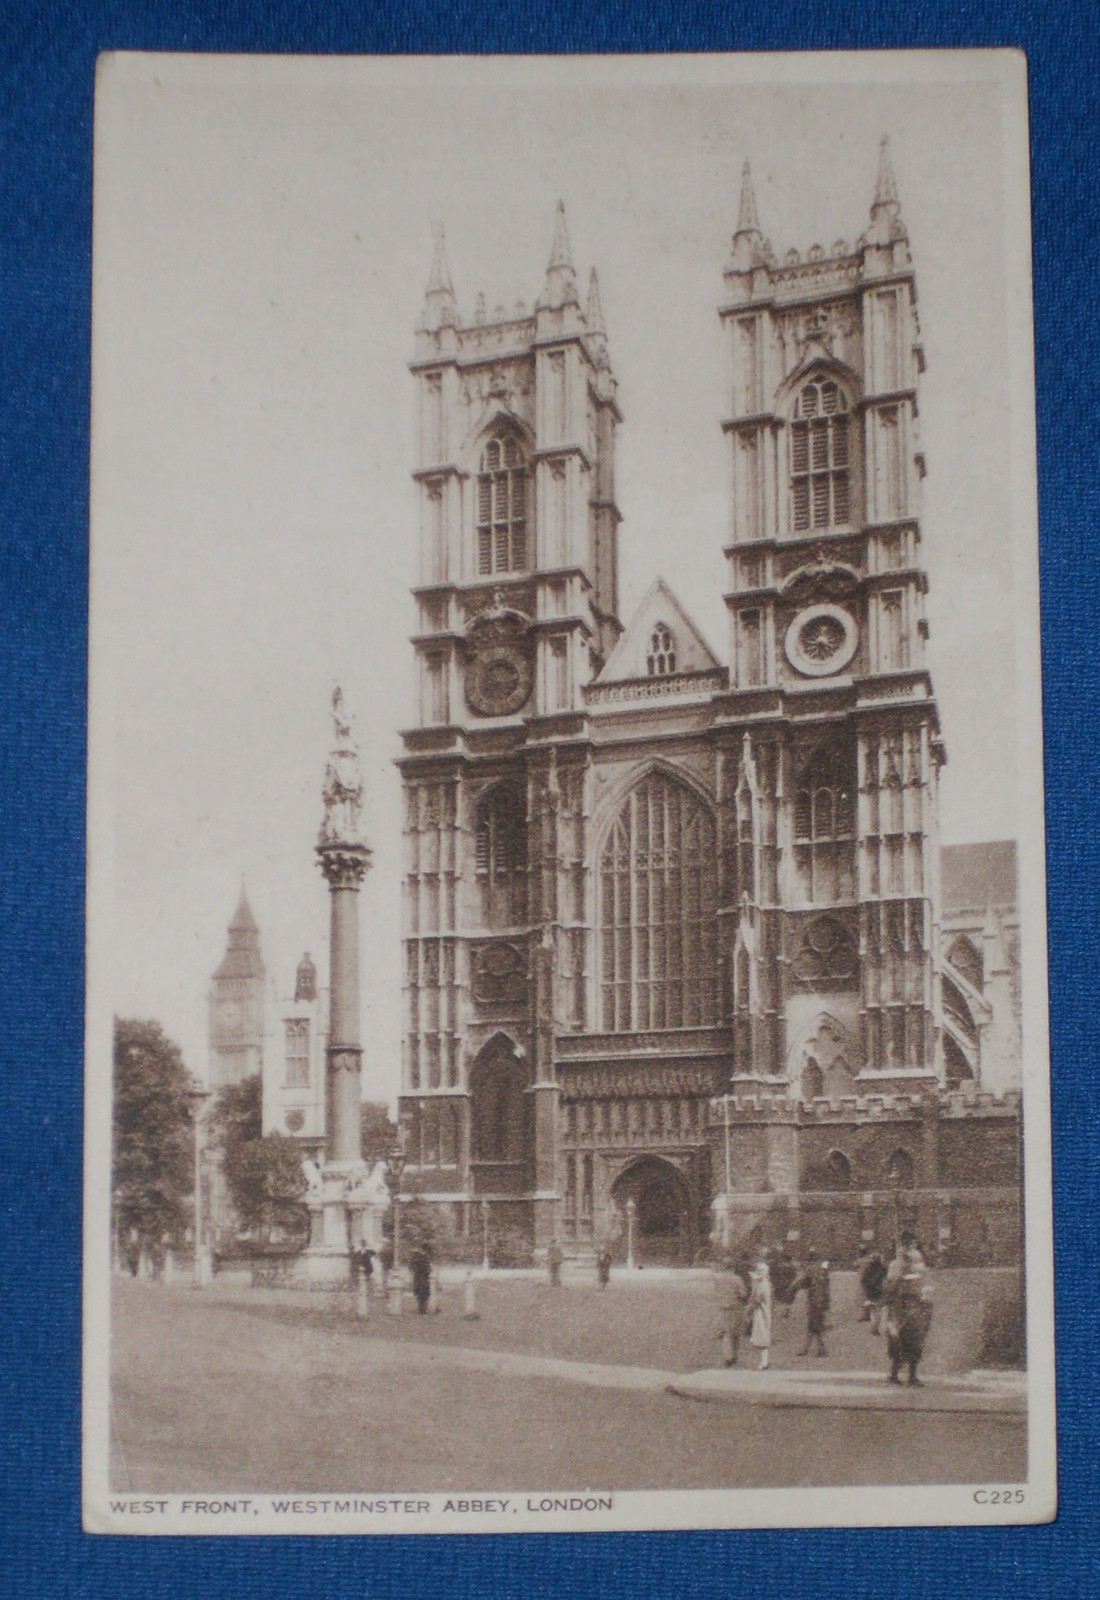 B + W Photo Postcard vtg WEST FRONT, WESTMINISTER ABBEY, LONDON unposted